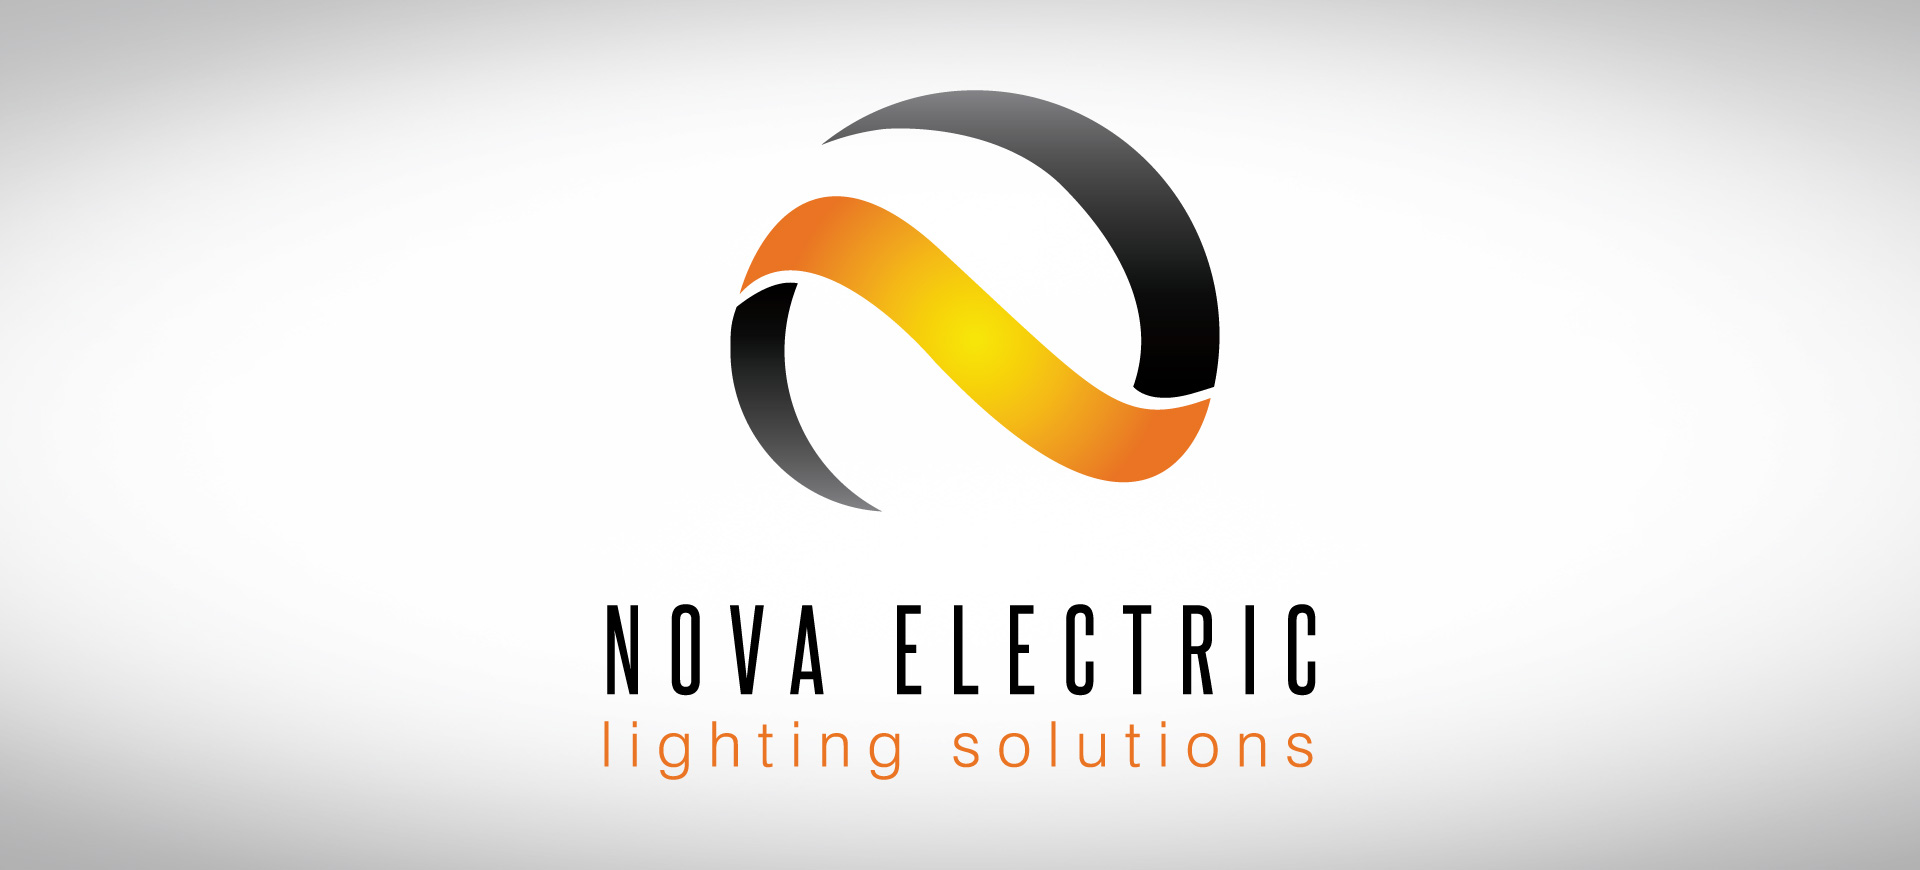 nova electric lighting solutions header